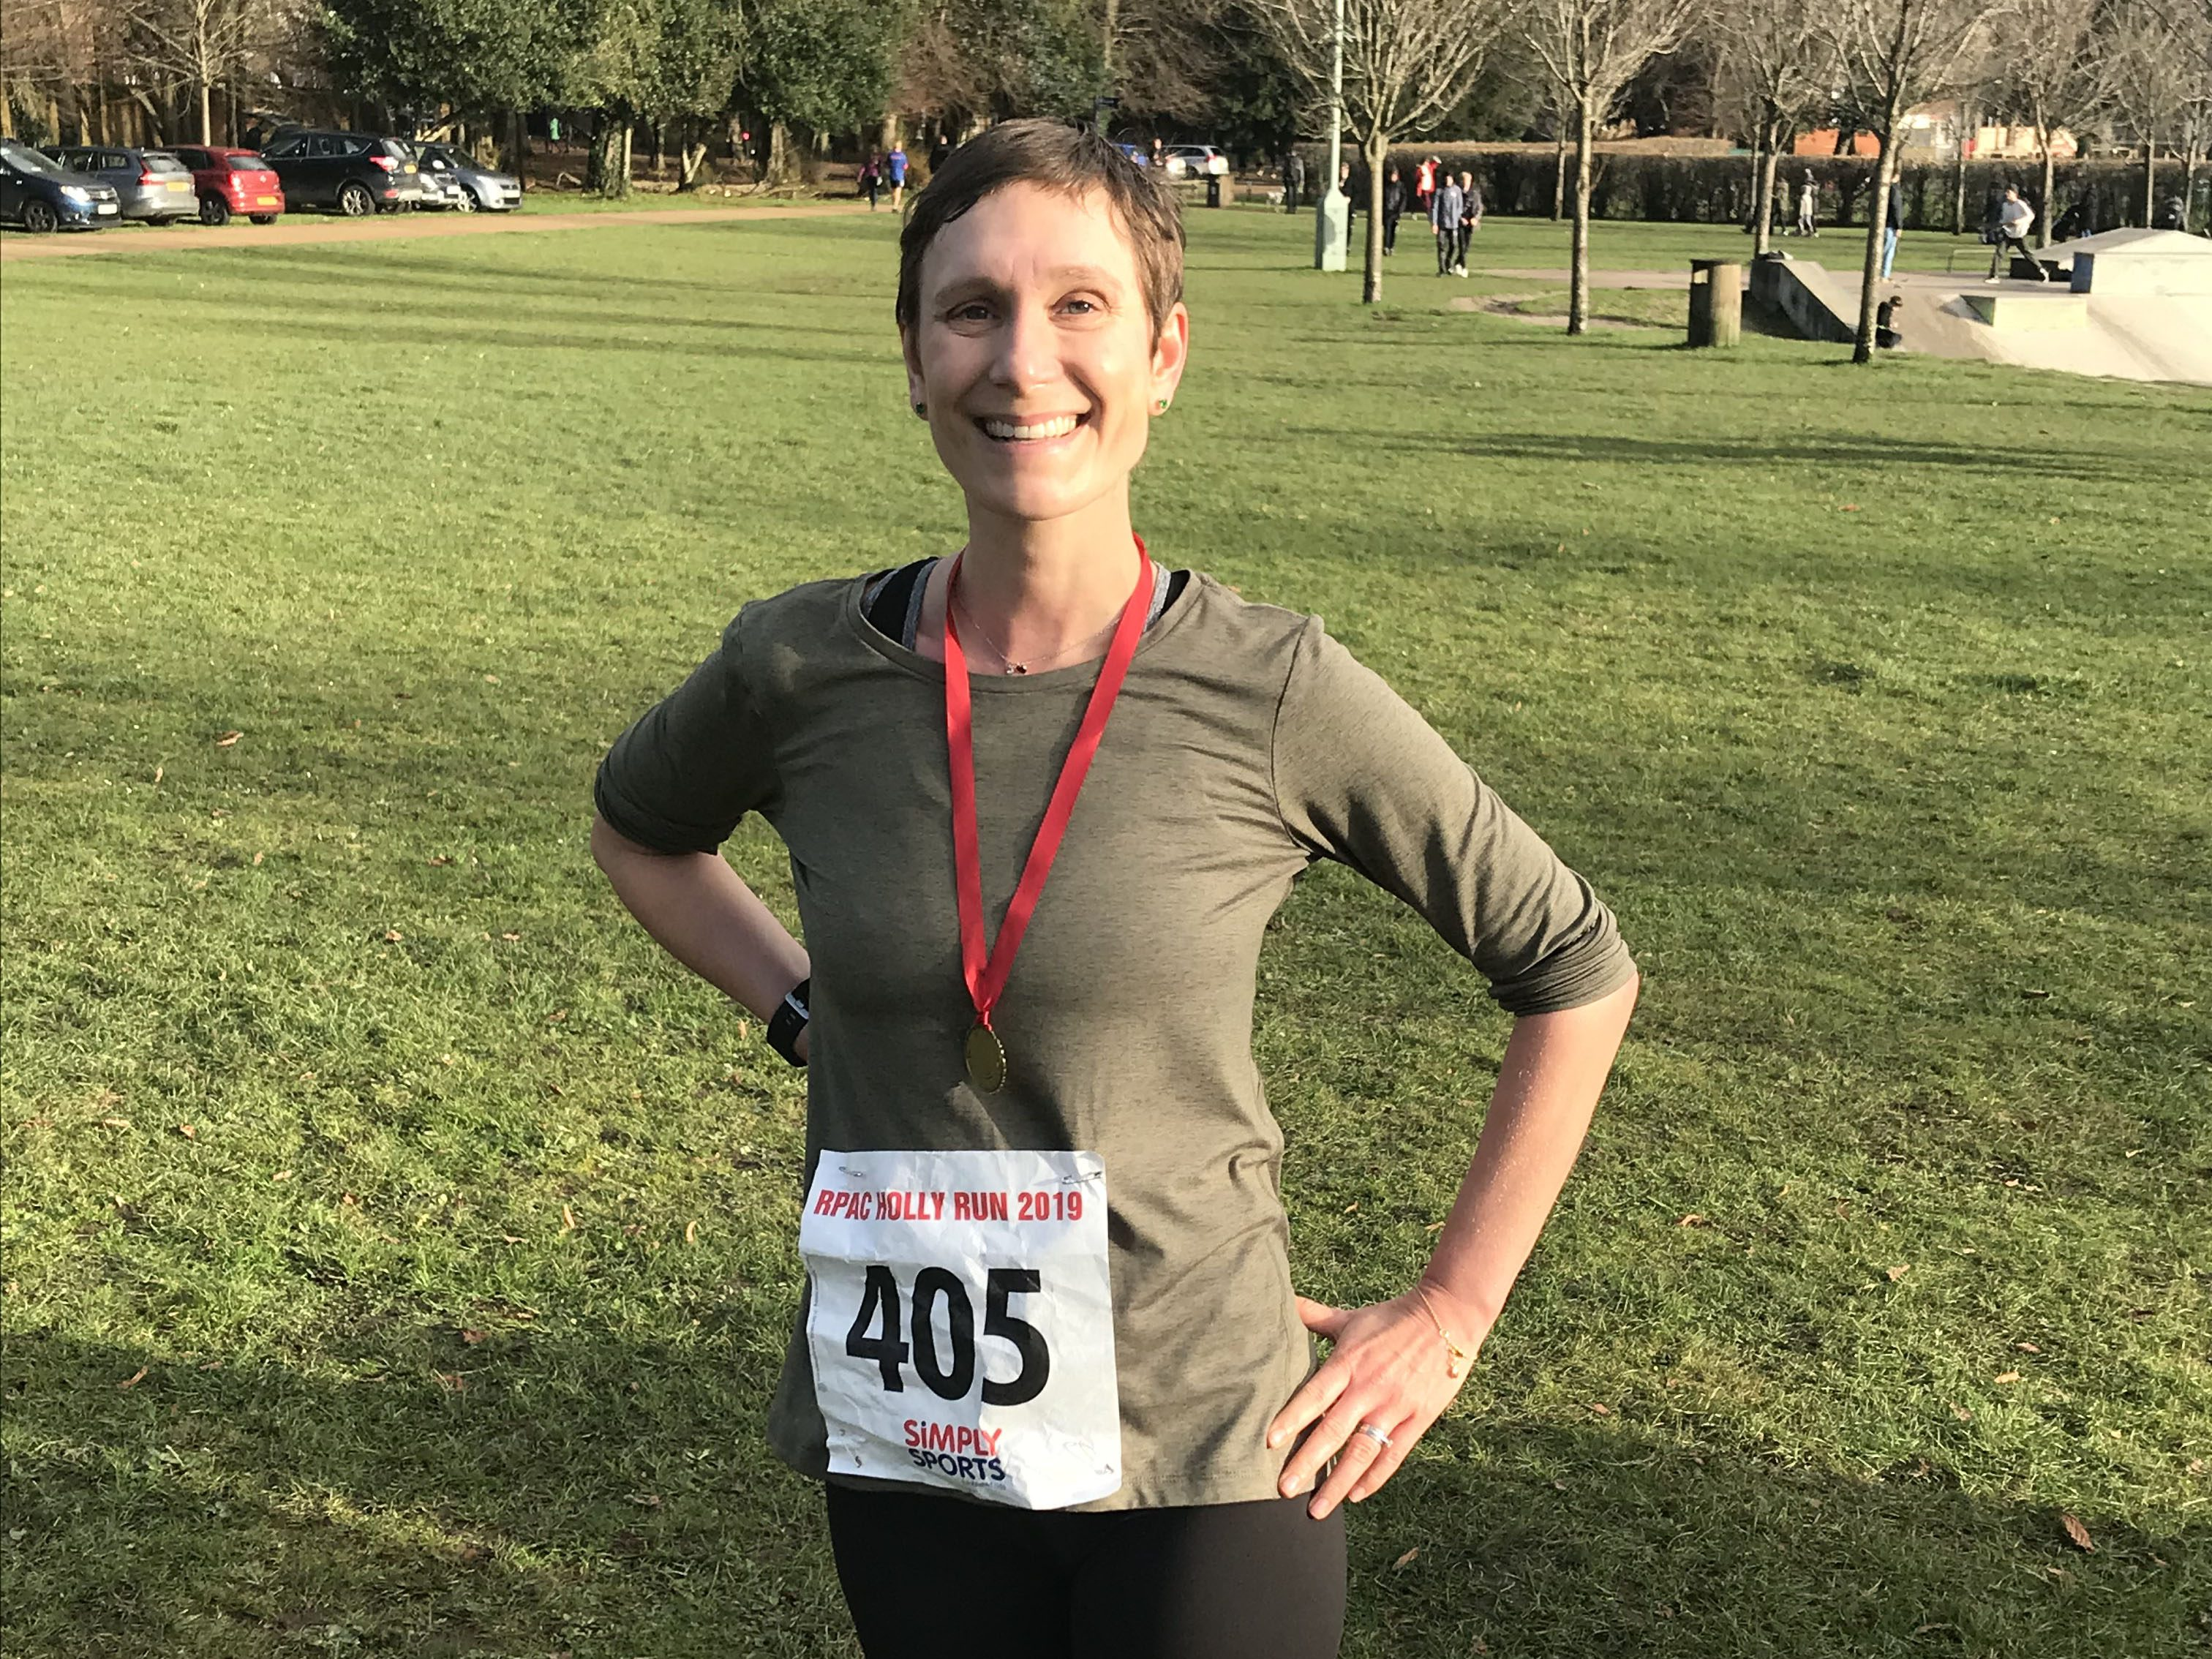 Amy first run after diagnosis